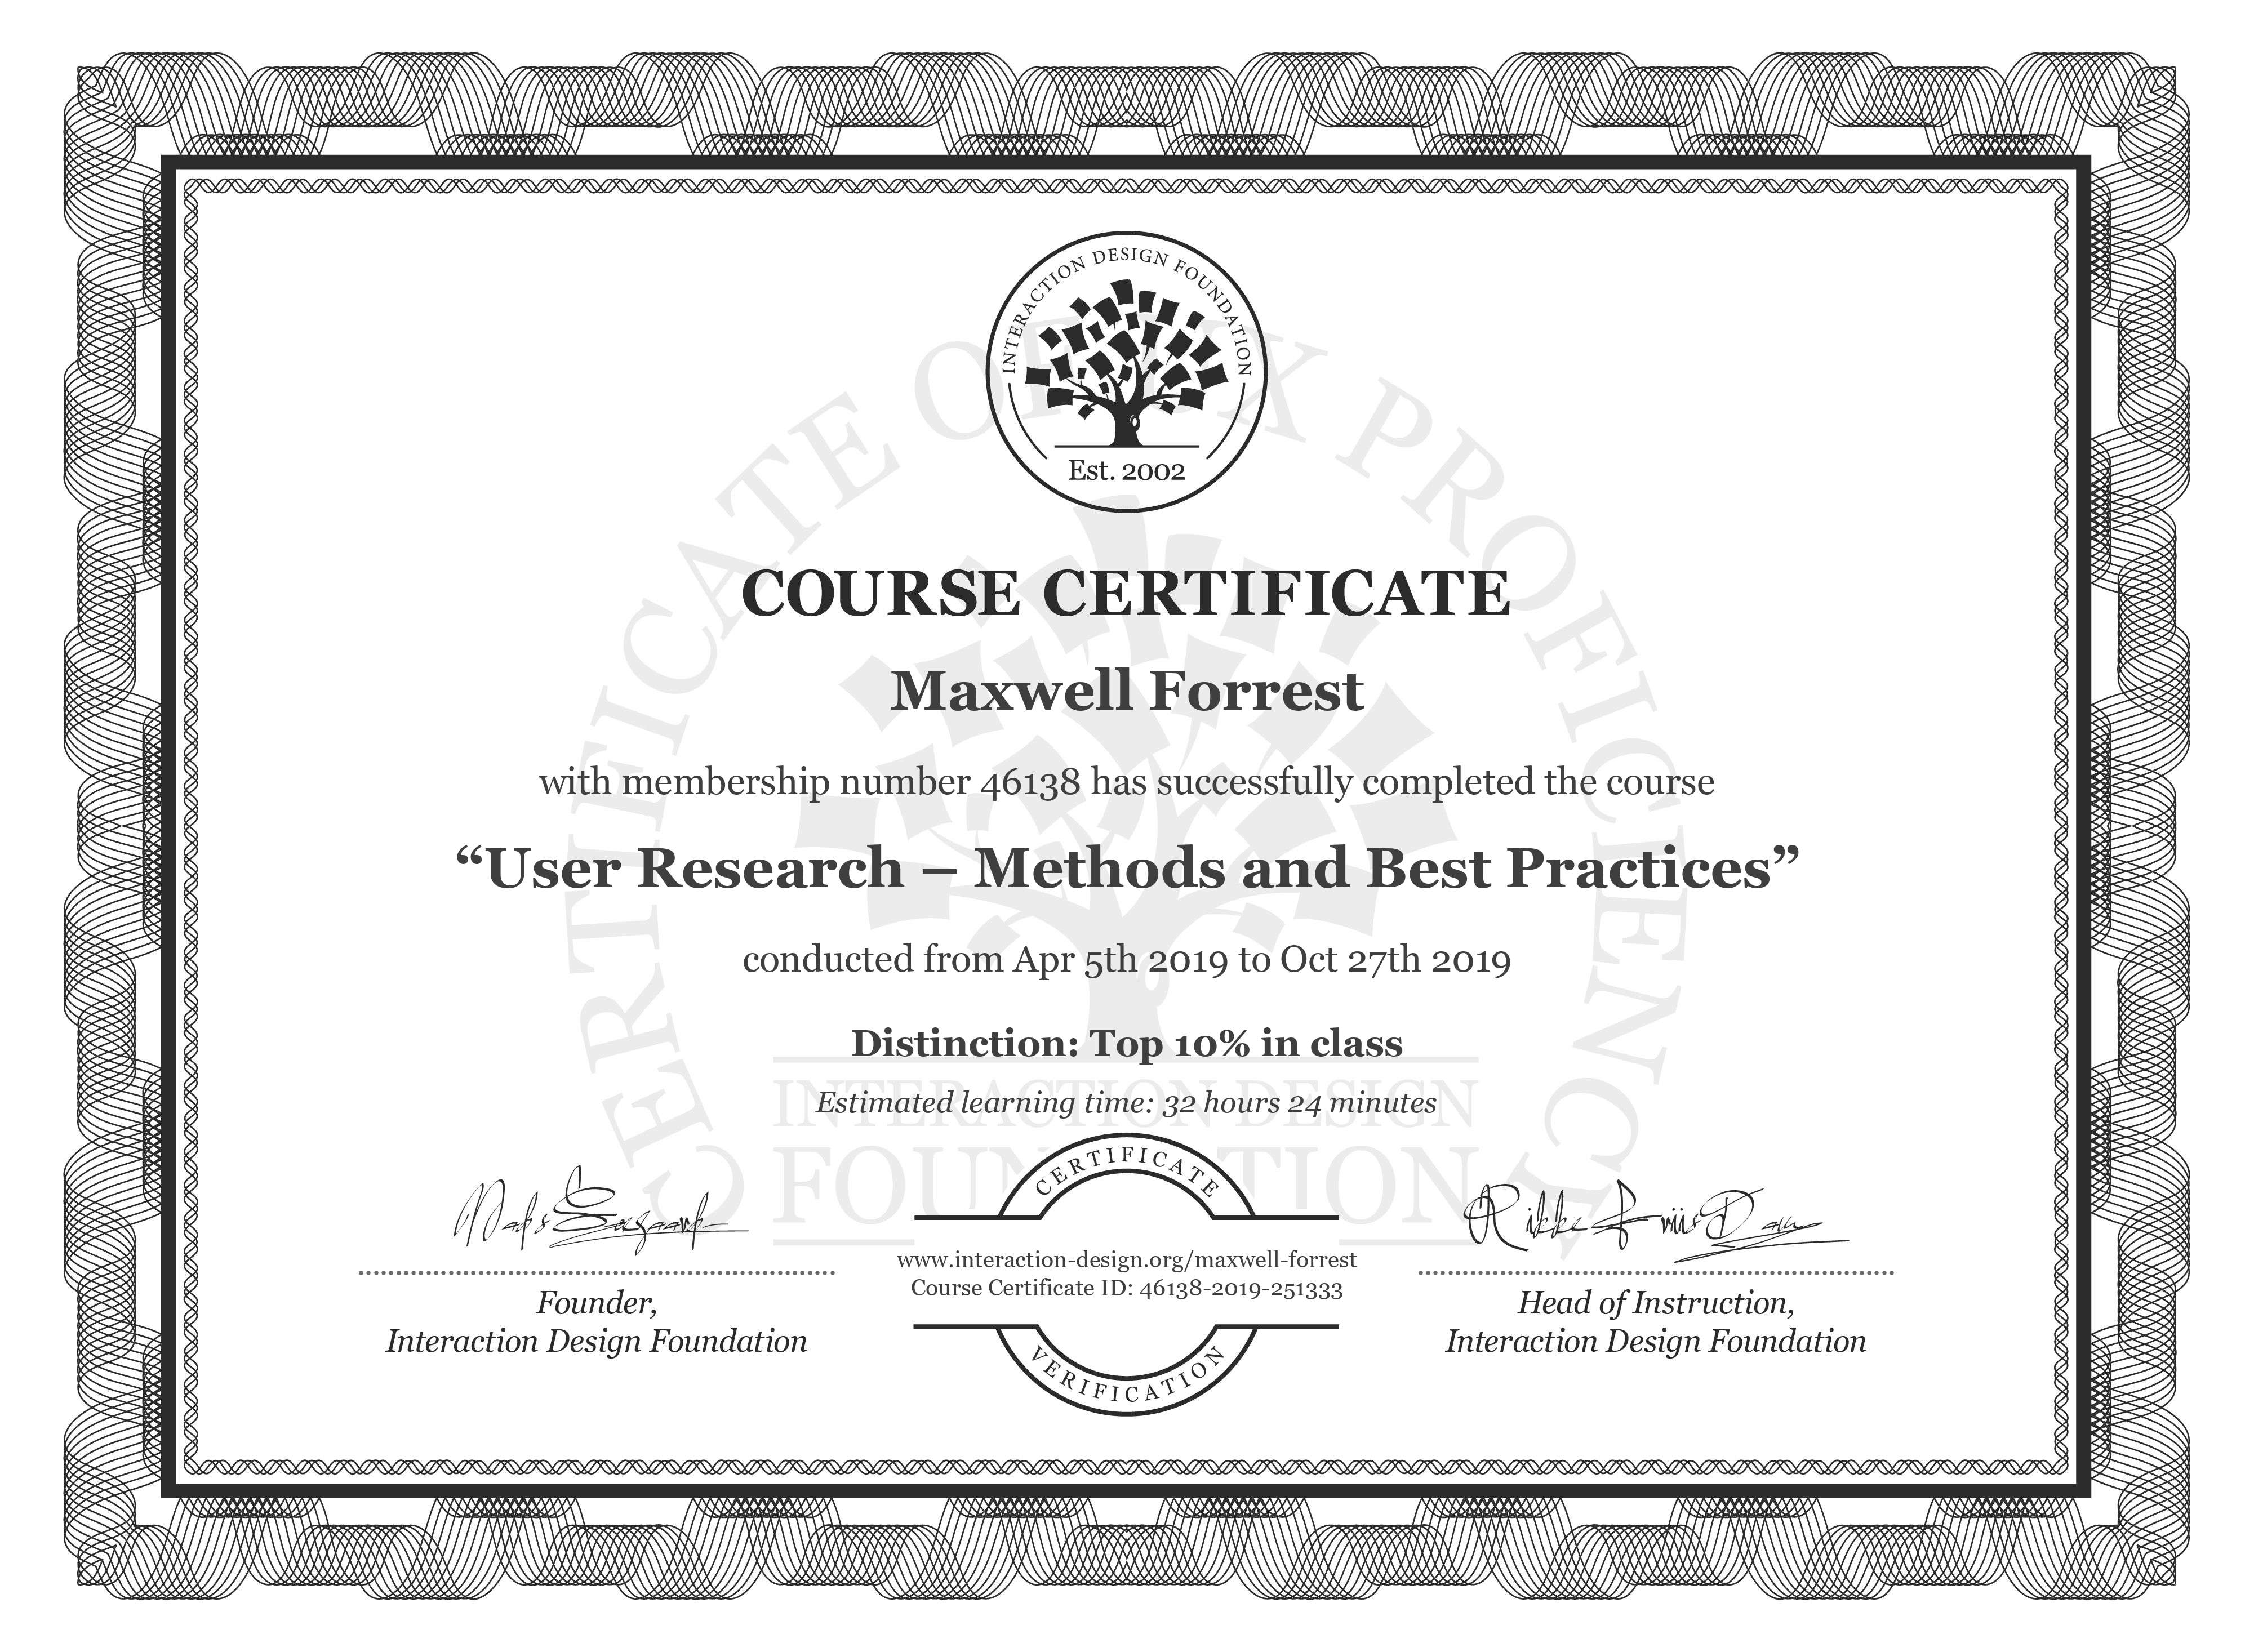 Maxwell Forrest: Course Certificate - User Research – Methods and Best Practices